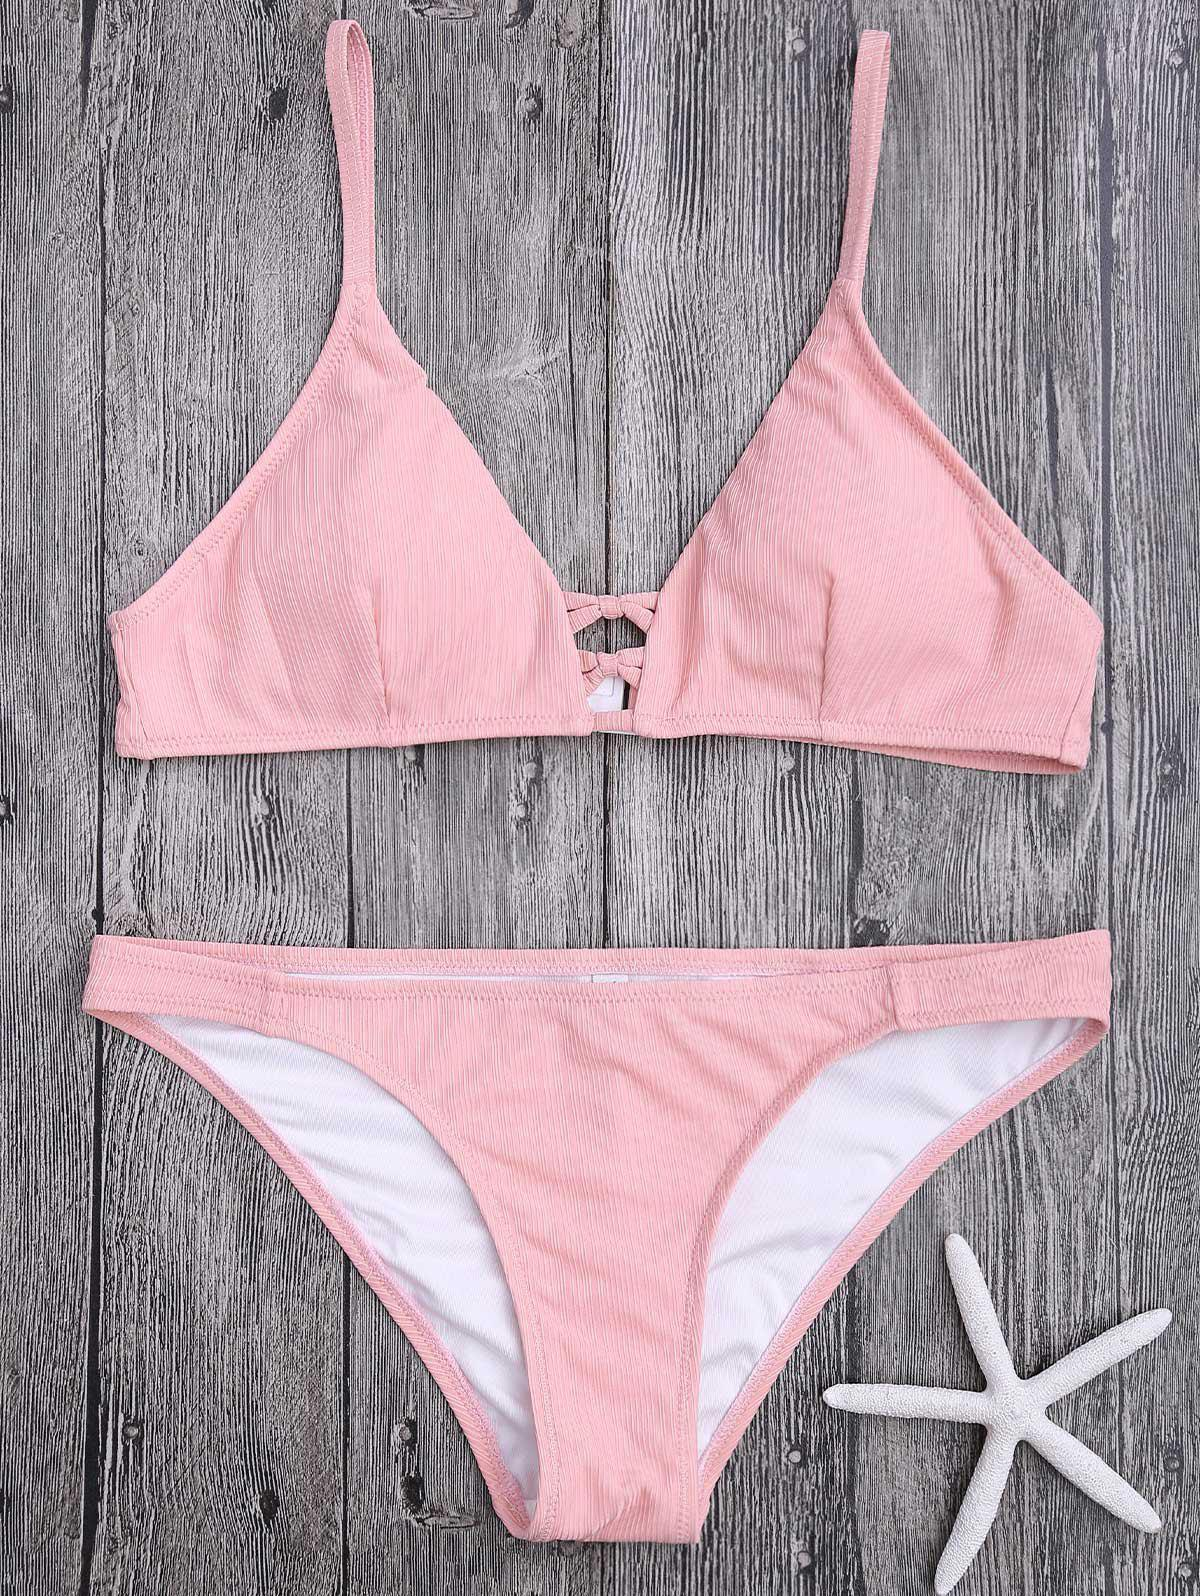 Criss Cross Cami Strap Texture Bikini SetWOMEN<br><br>Size: S; Color: PINK; Swimwear Type: Bikini; Gender: For Women; Material: Nylon,Spandex; Bra Style: Padded; Support Type: Wire Free; Neckline: Spaghetti Straps; Pattern Type: Solid Color; Embellishment: Criss-Cross; Waist: Natural; Elasticity: Elastic; Weight: 0.1500kg; Package Contents: 1 x Bra  1 x Briefs;